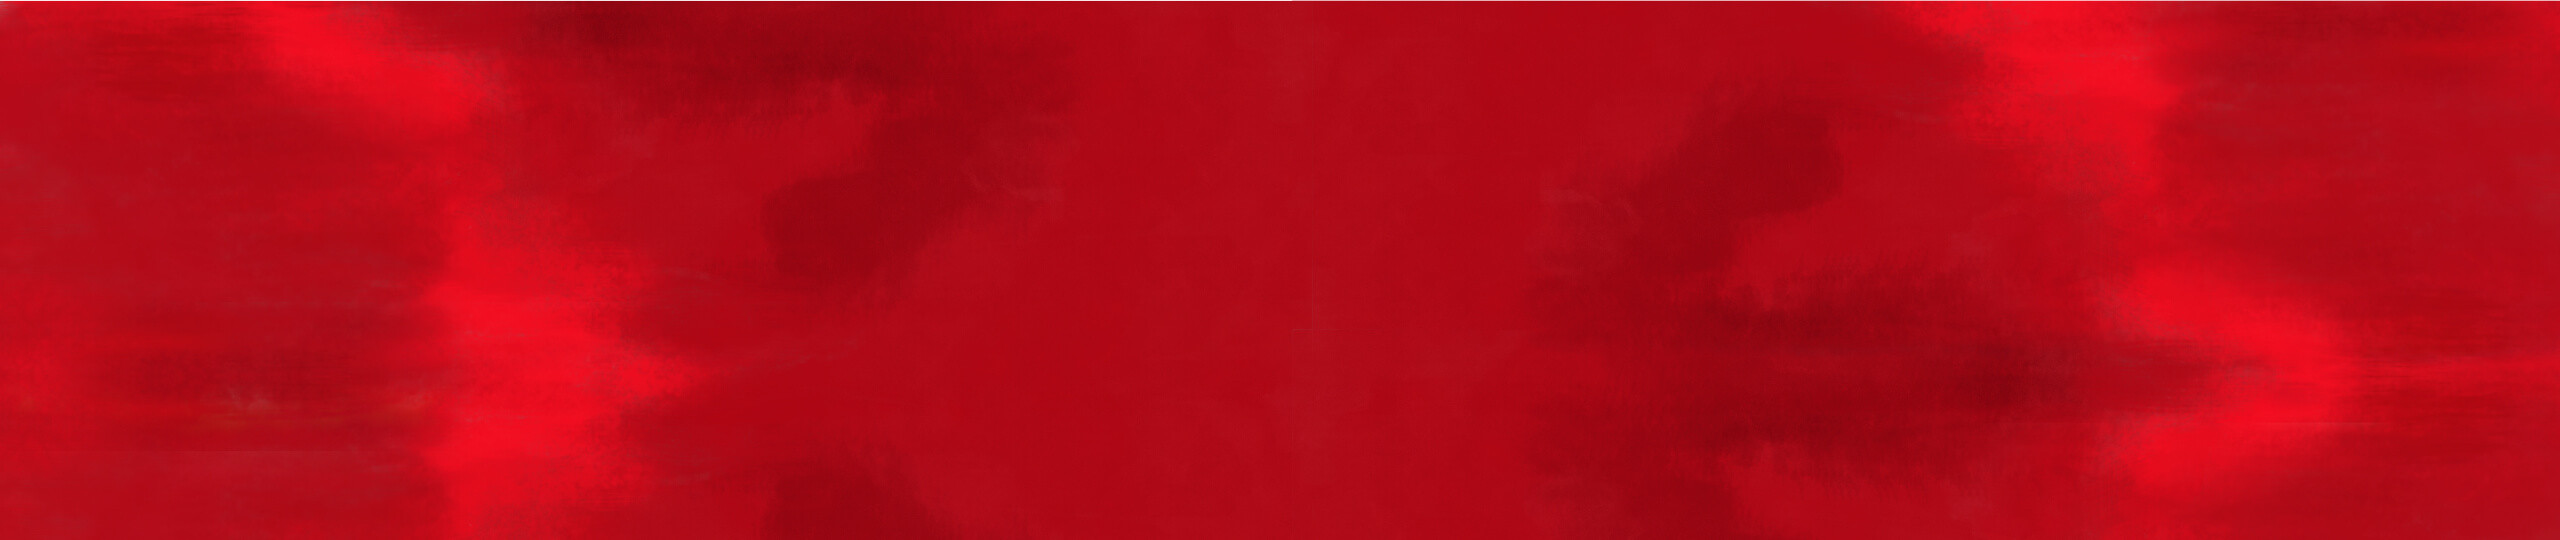 ESOR-RED-BG-Painted.jpg